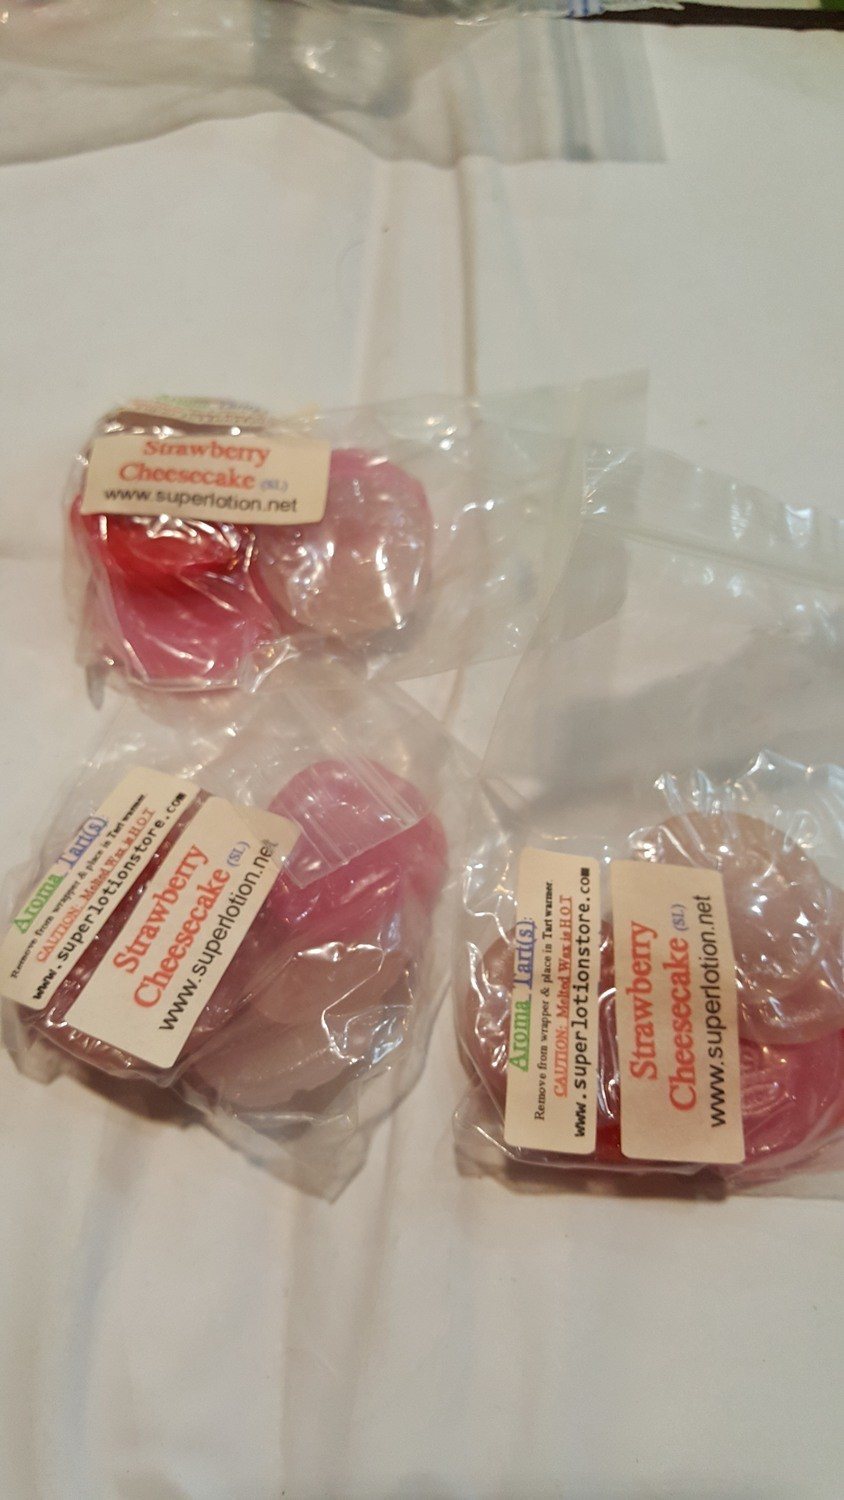 Strawberry Cheesecake wax melts